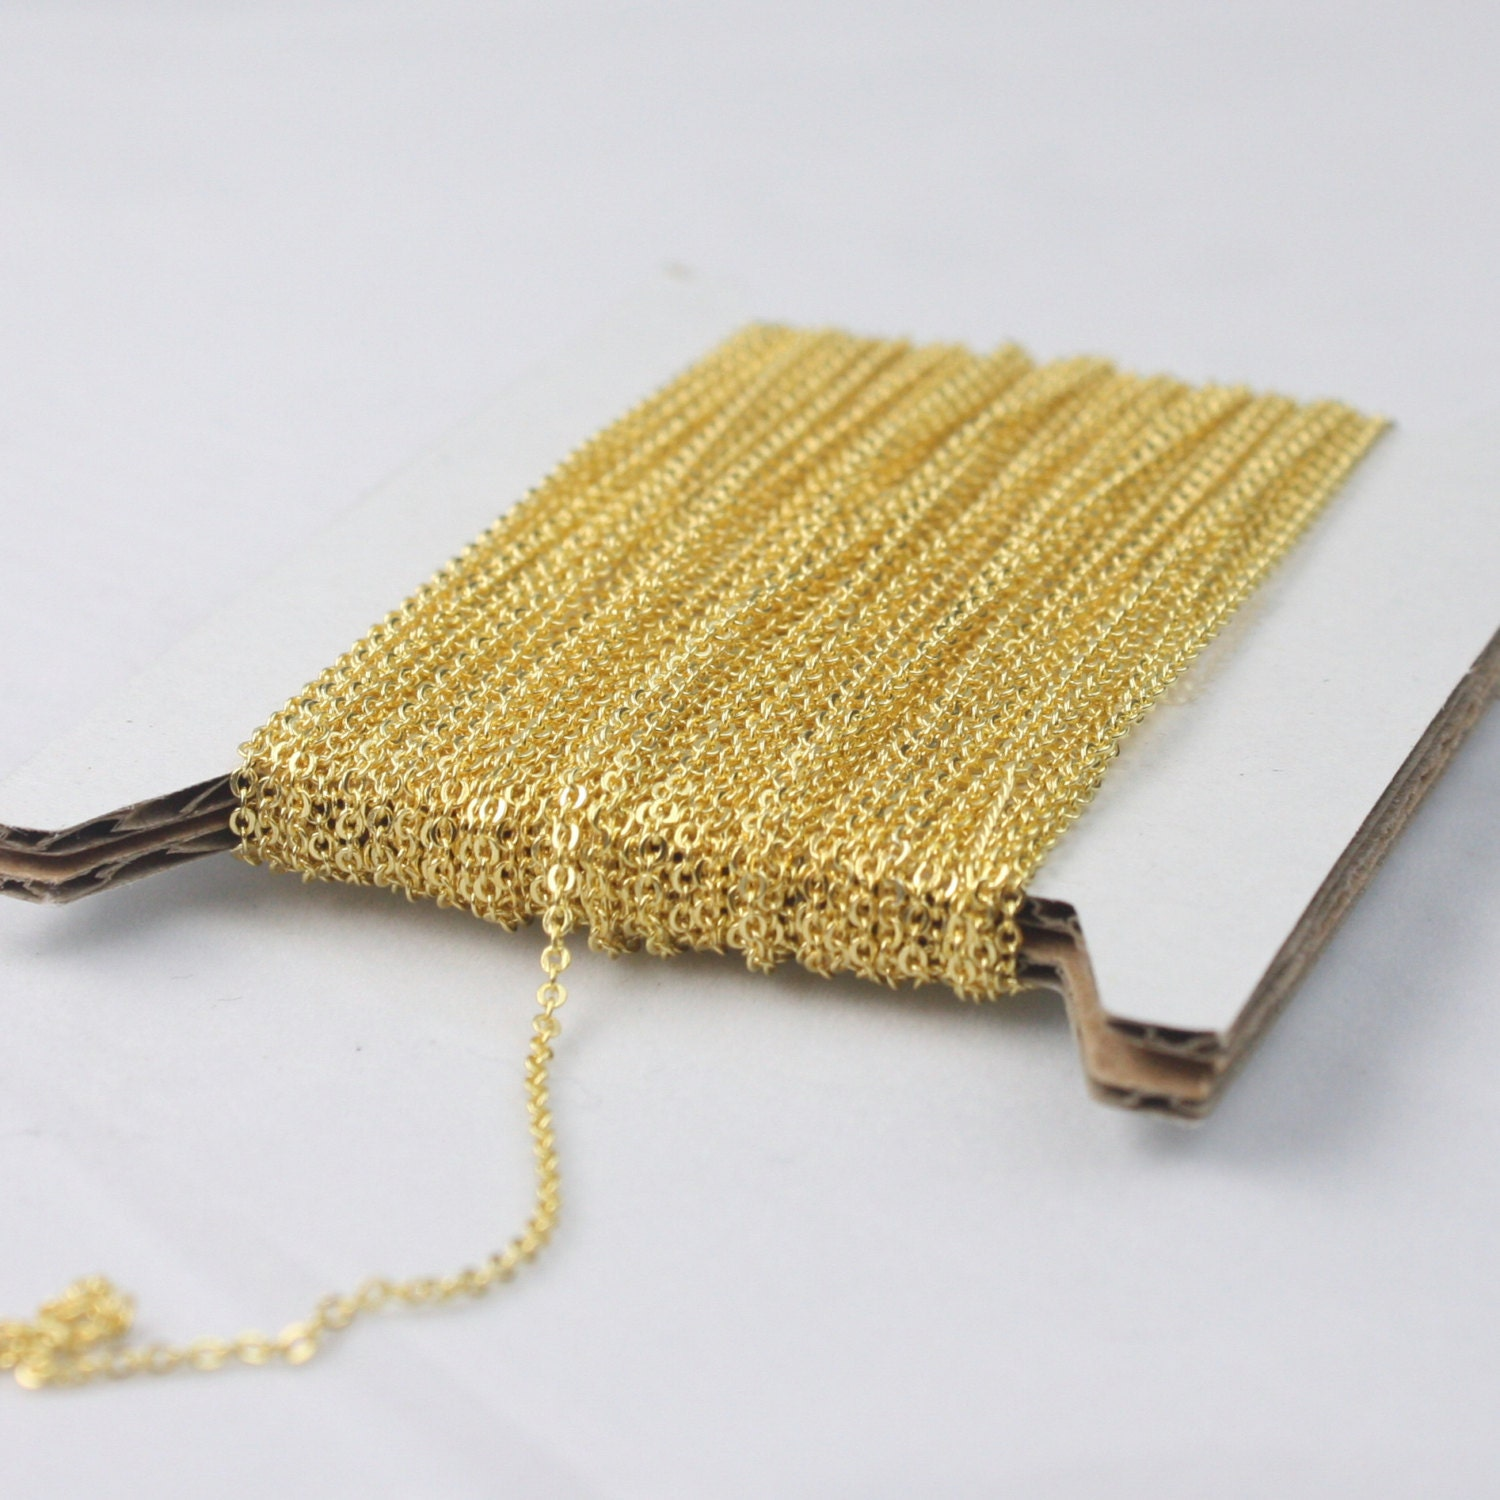 Bulk model rockets wholesale - Gold Plated Chain Bulk Chain 10 Ft Of Tiny Flat Soldered Necklace Wholesale Cable Chain 2x1 4mm Free Adequate Jumpring 50pcs